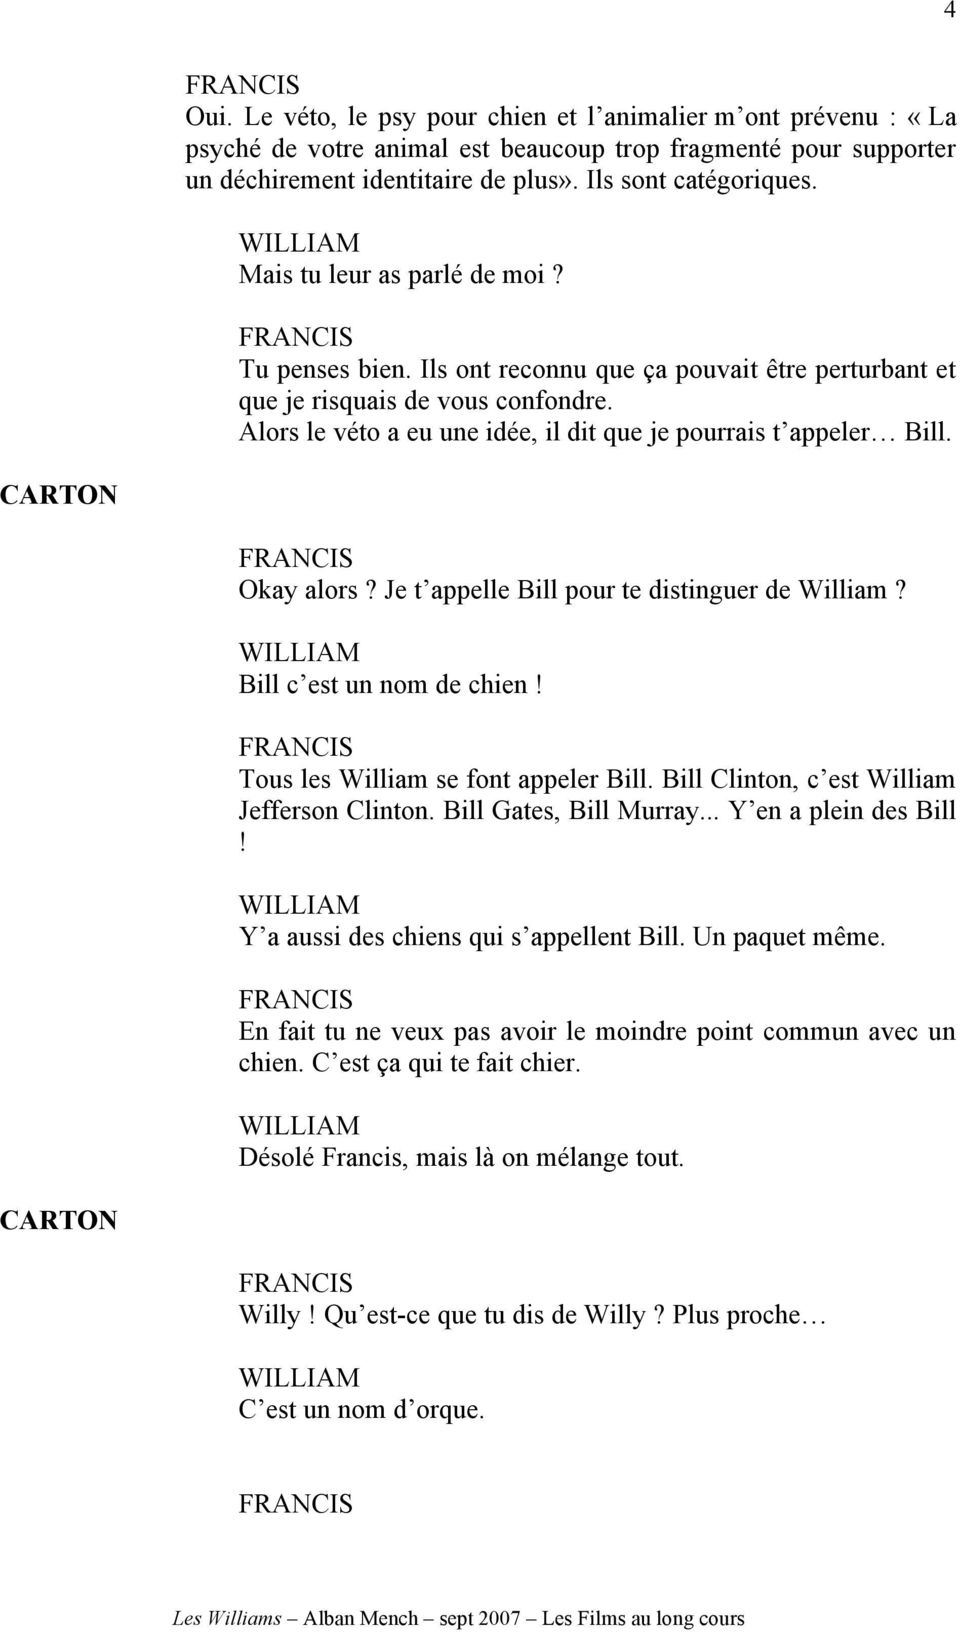 Okay alors? Je t appelle Bill pour te distinguer de William? Bill c est un nom de chien! Tous les William se font appeler Bill. Bill Clinton, c est William Jefferson Clinton. Bill Gates, Bill Murray.